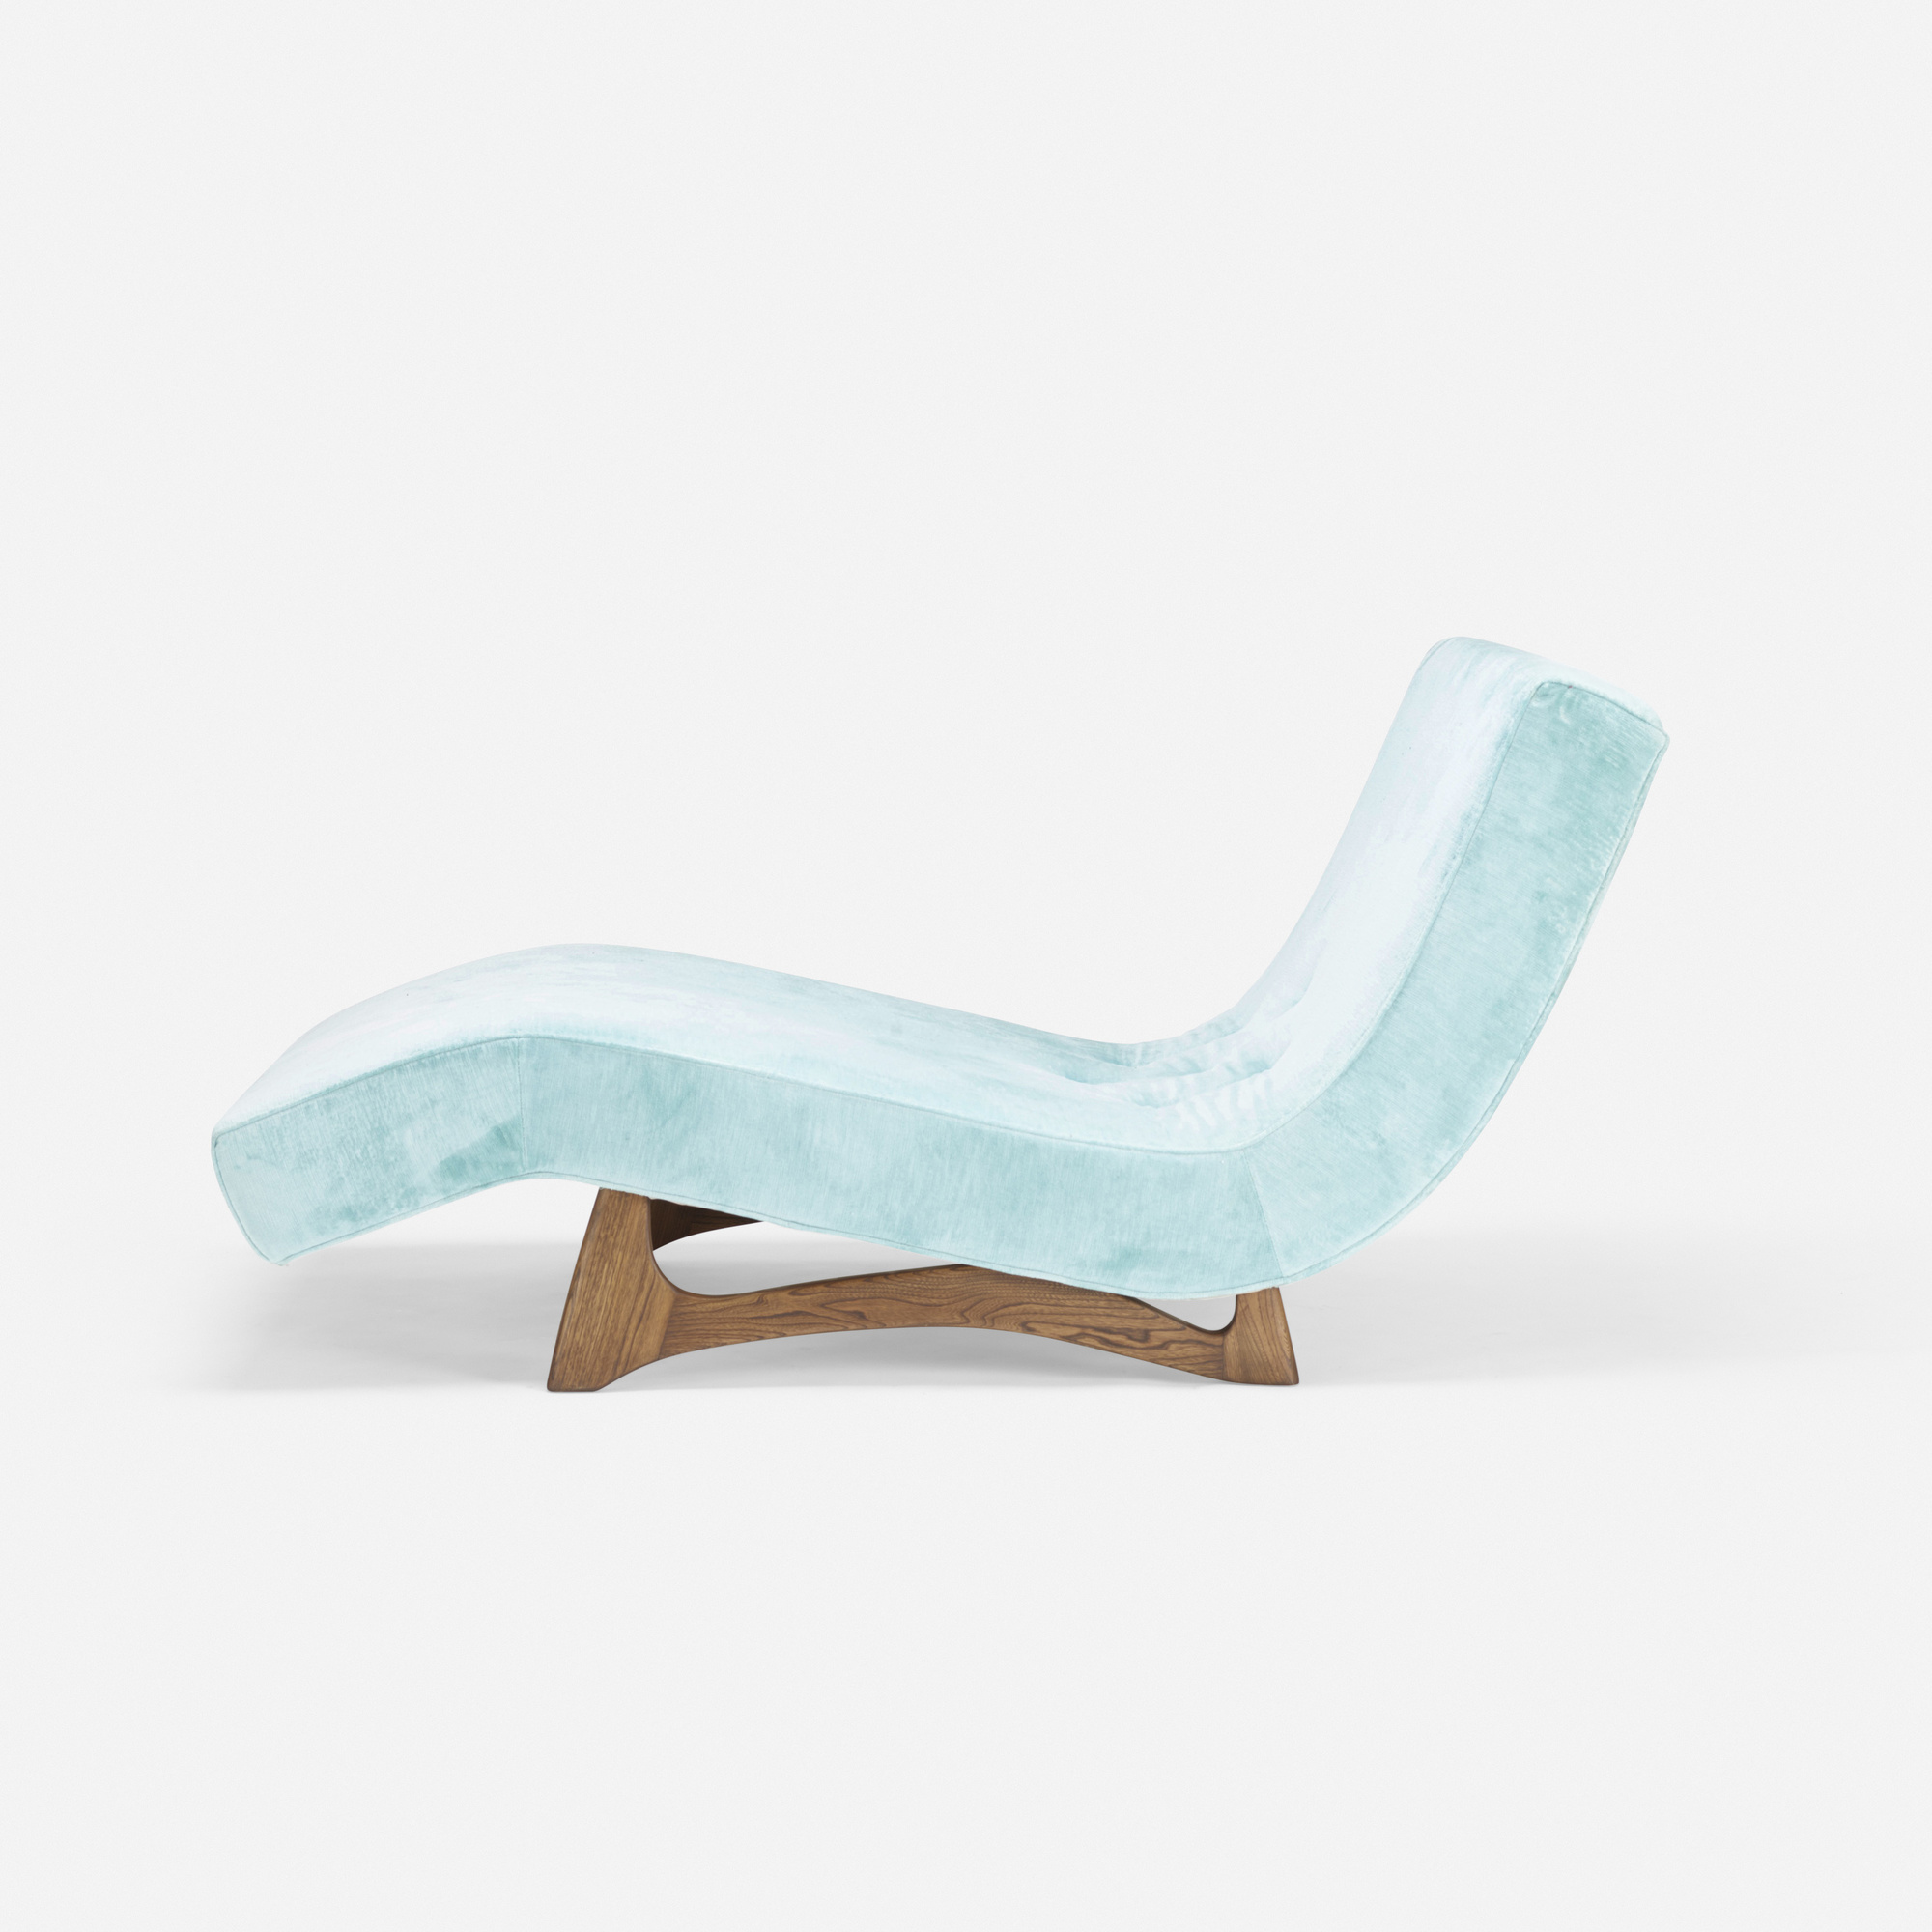 158: Adrian Pearsall / Wave chaise lounge (2 of 3)